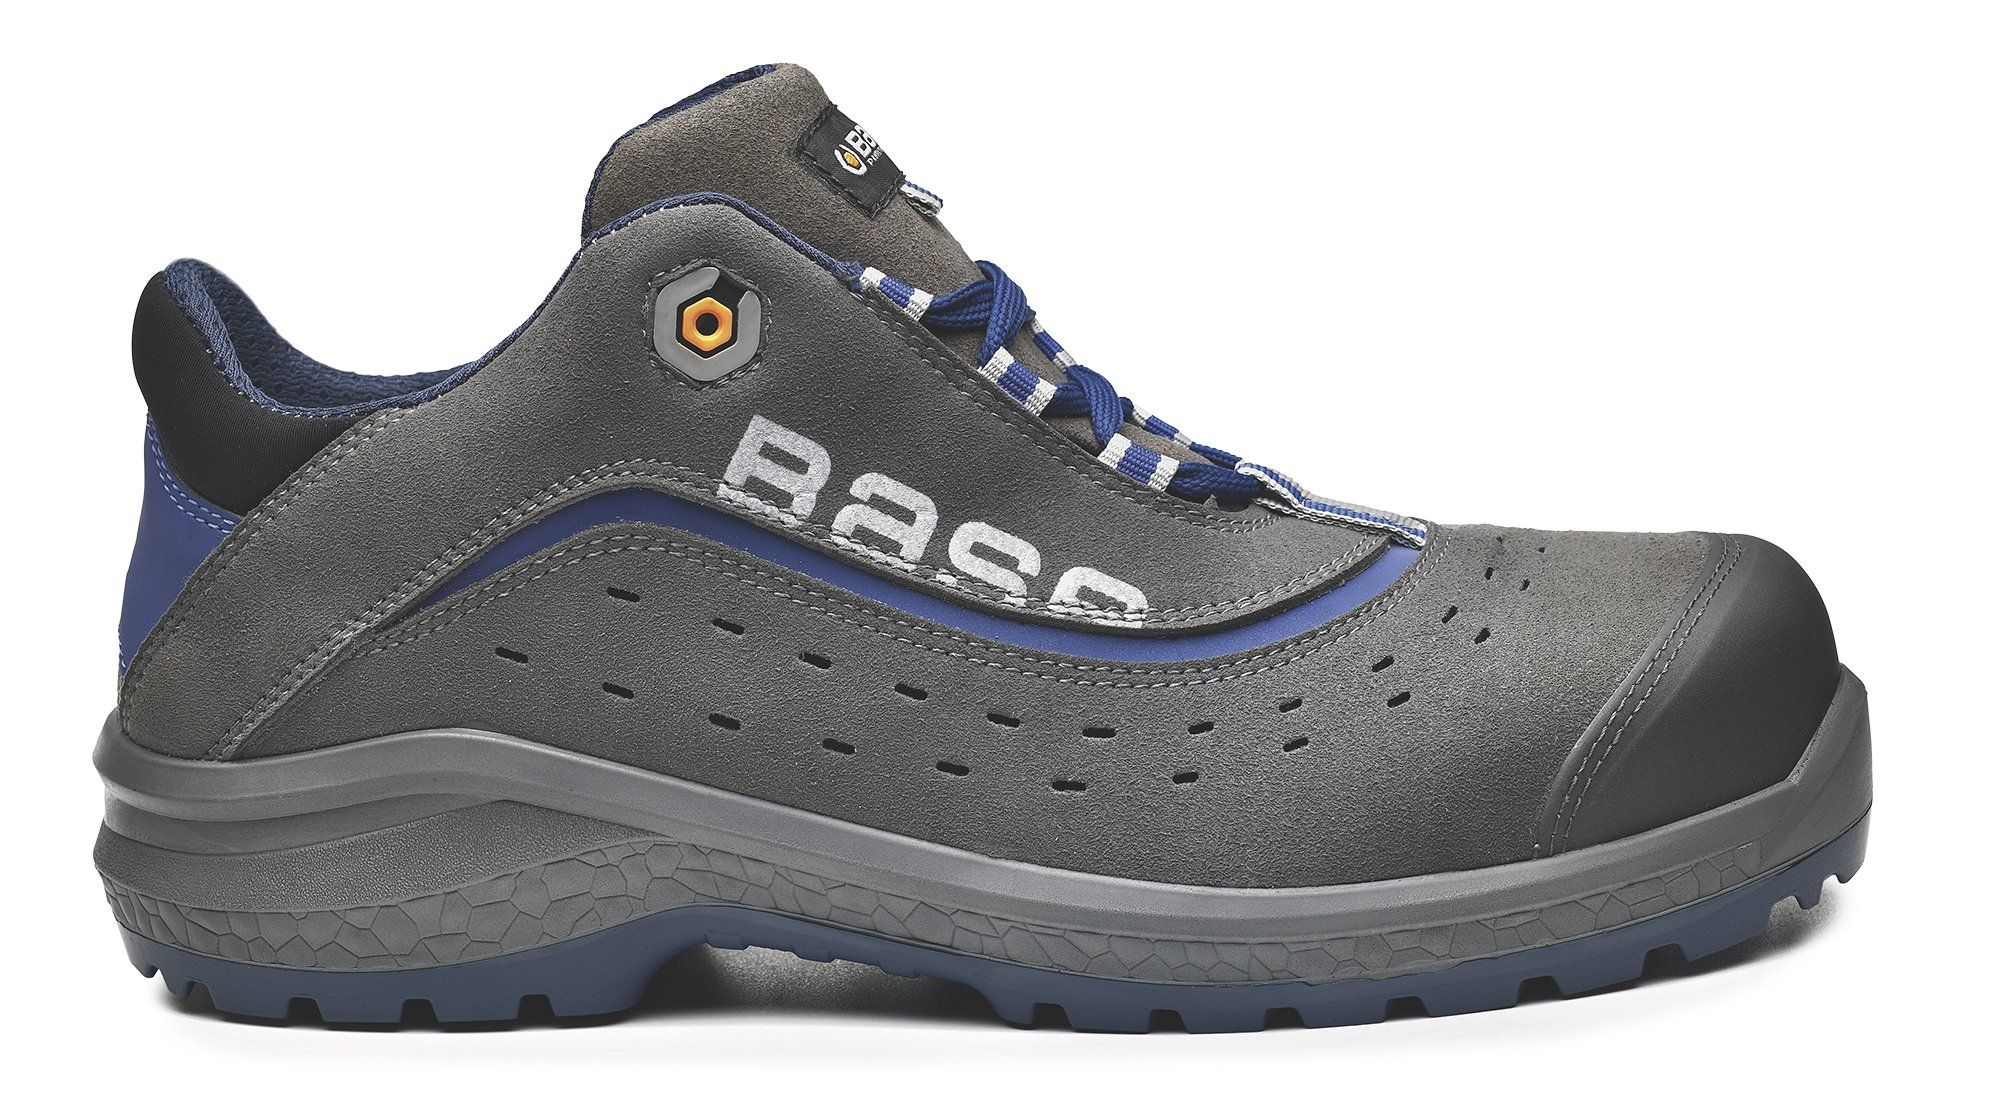 Base Protection Safety Work Shoe/ Boots, Composite toecap